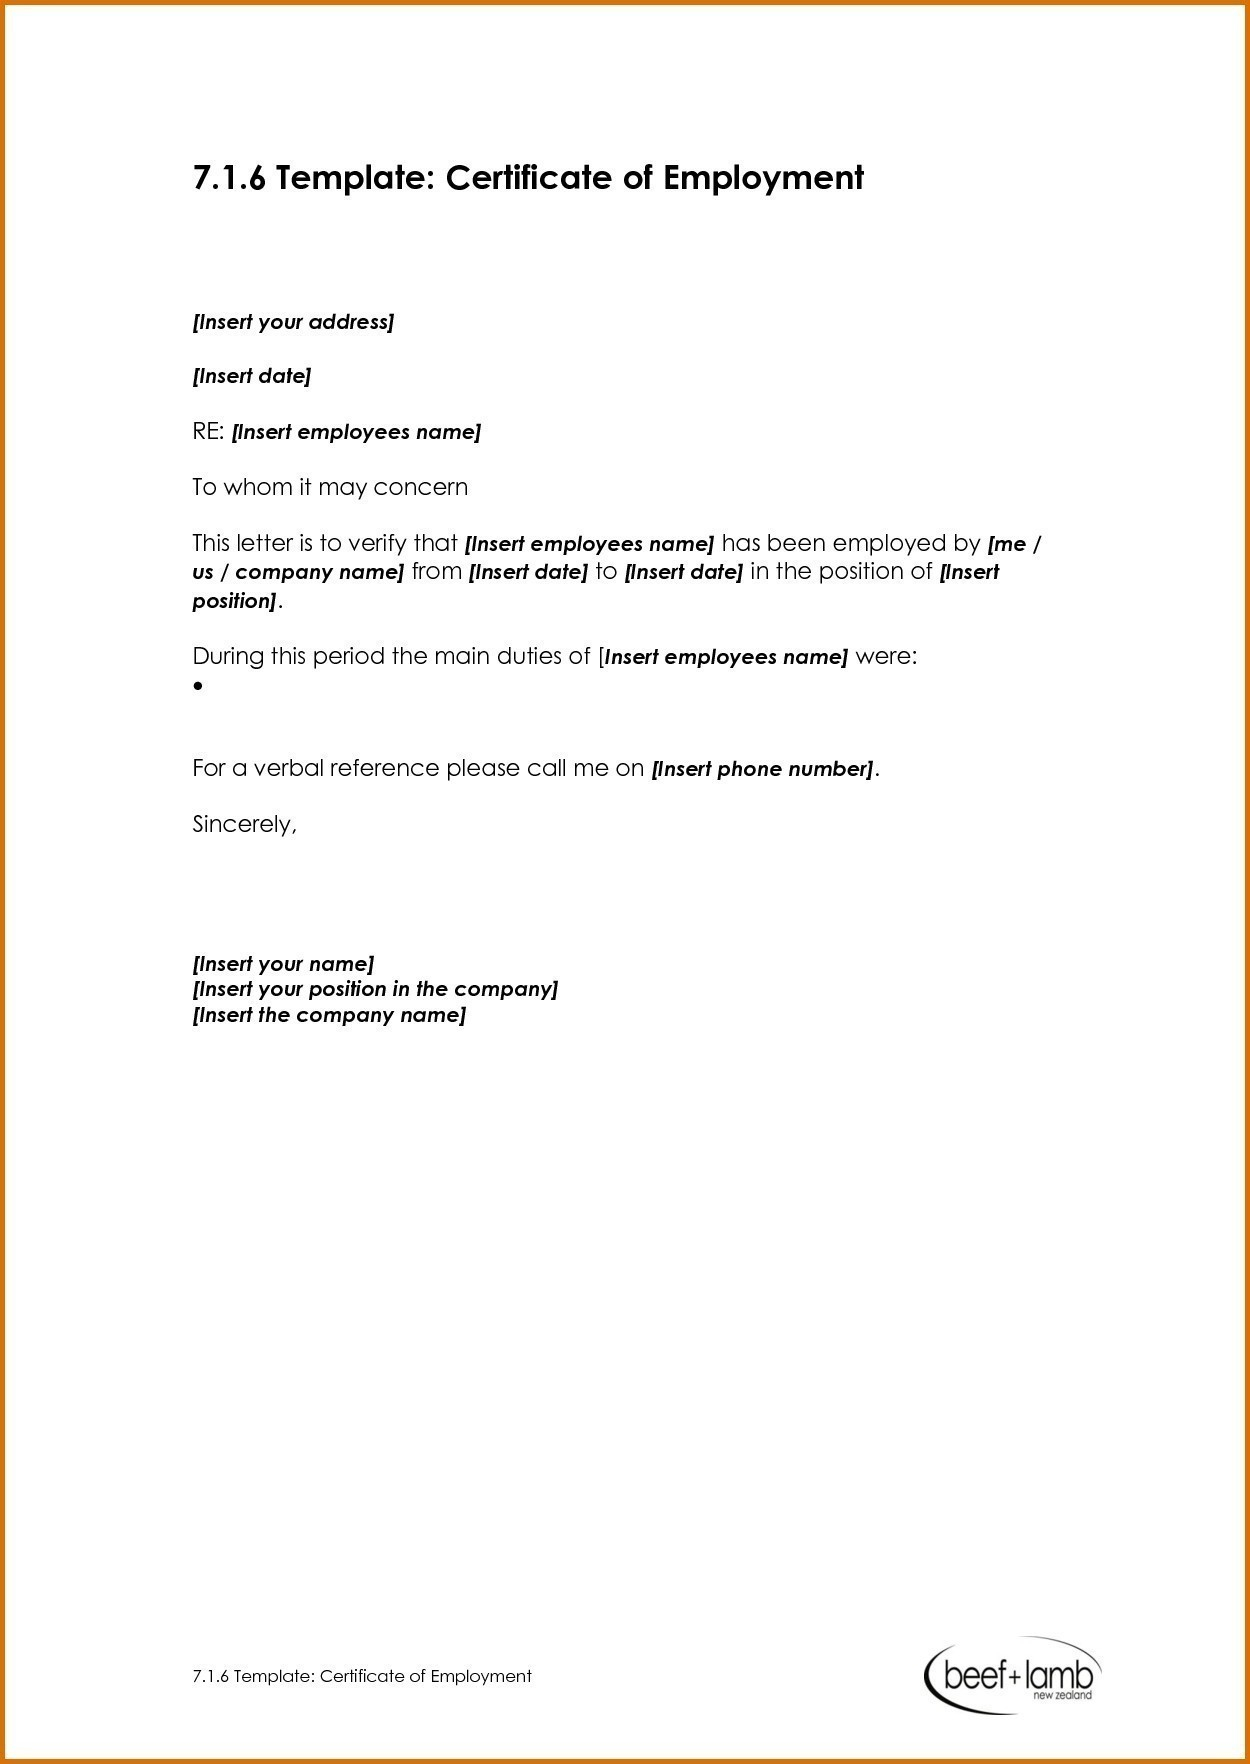 Employment Verification Letter Sample and Template - Sample Certificate Employment with Salary Indicated Best